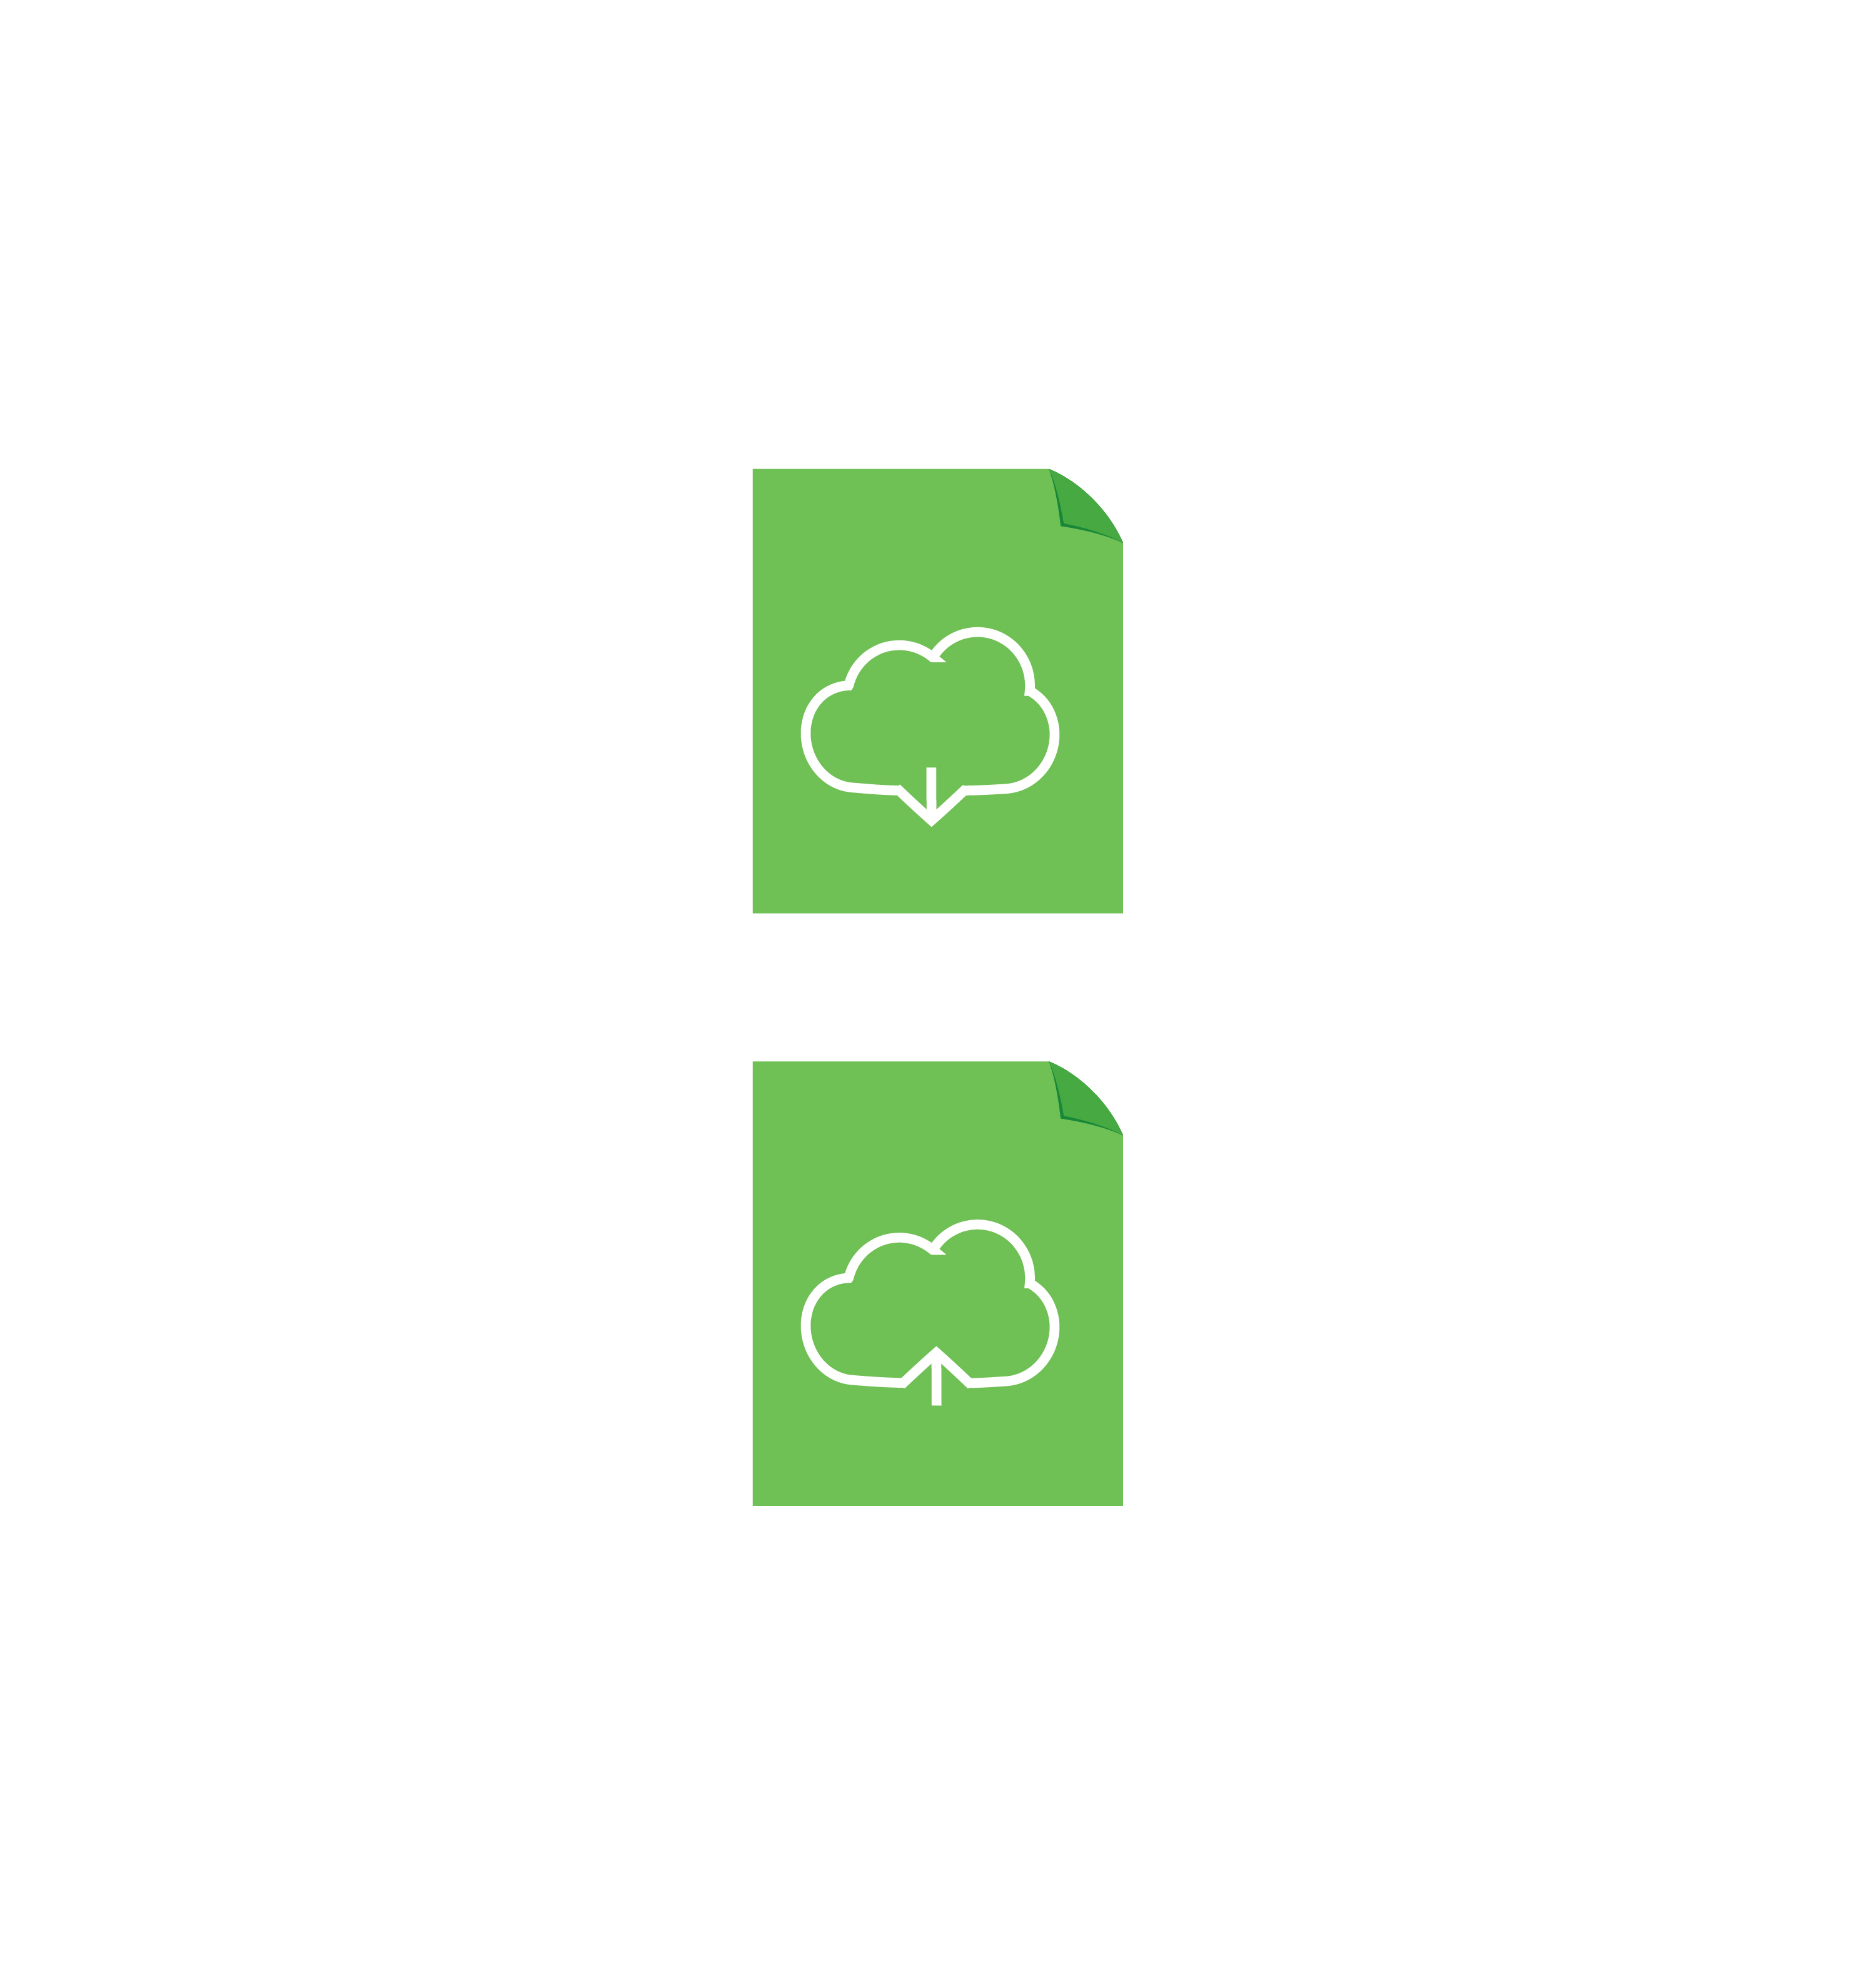 cloud download and upload icon 25